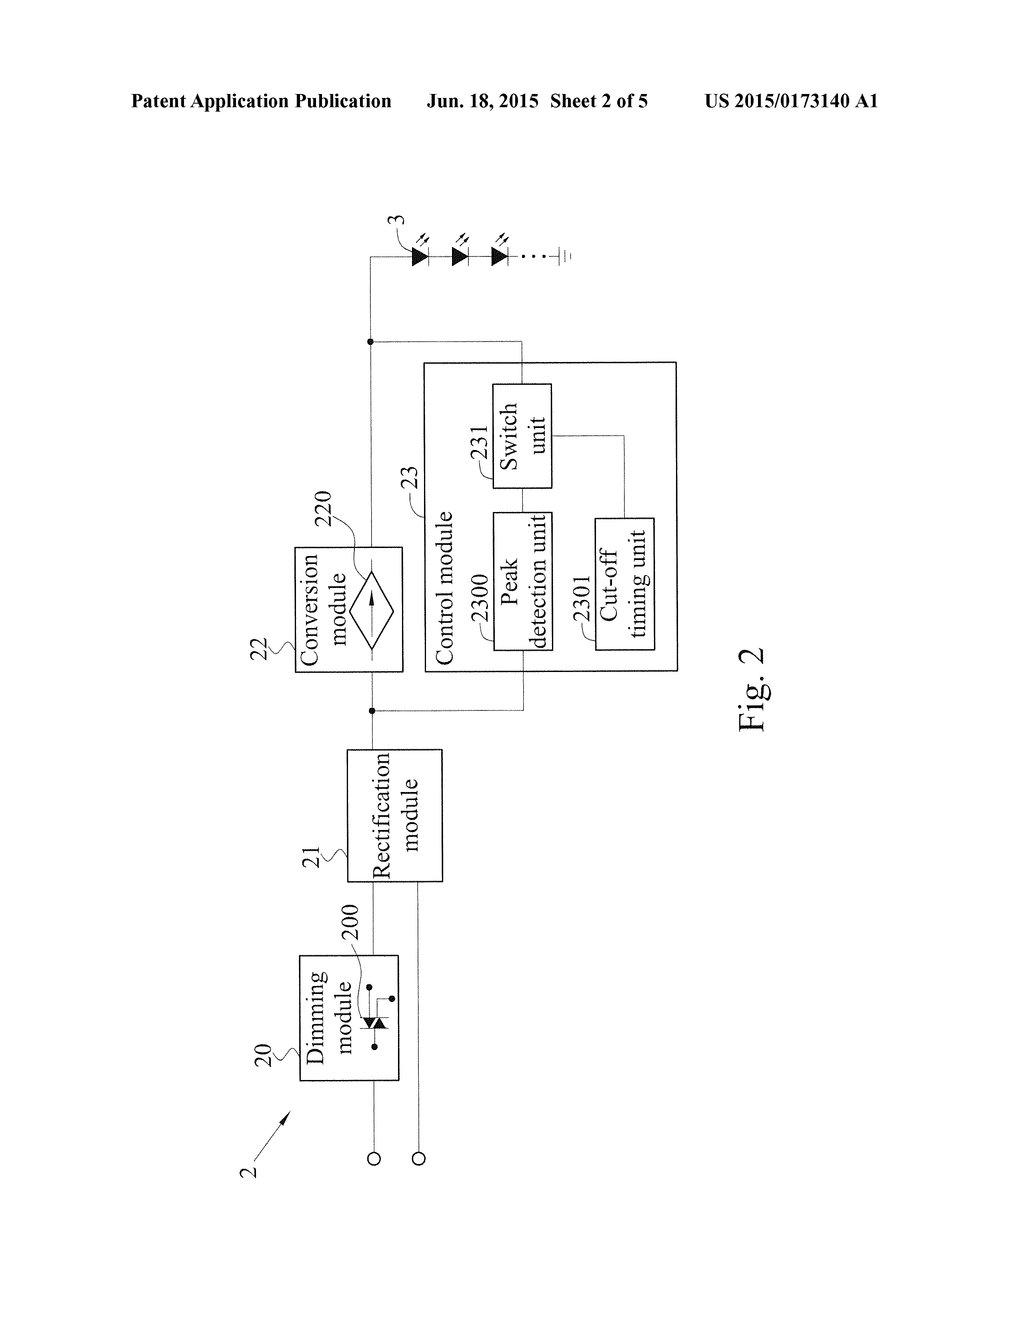 Led Driver Circuit For Supplying Triac Holding Current By Using Schematic Of Controllable Source Diagram And Image 03